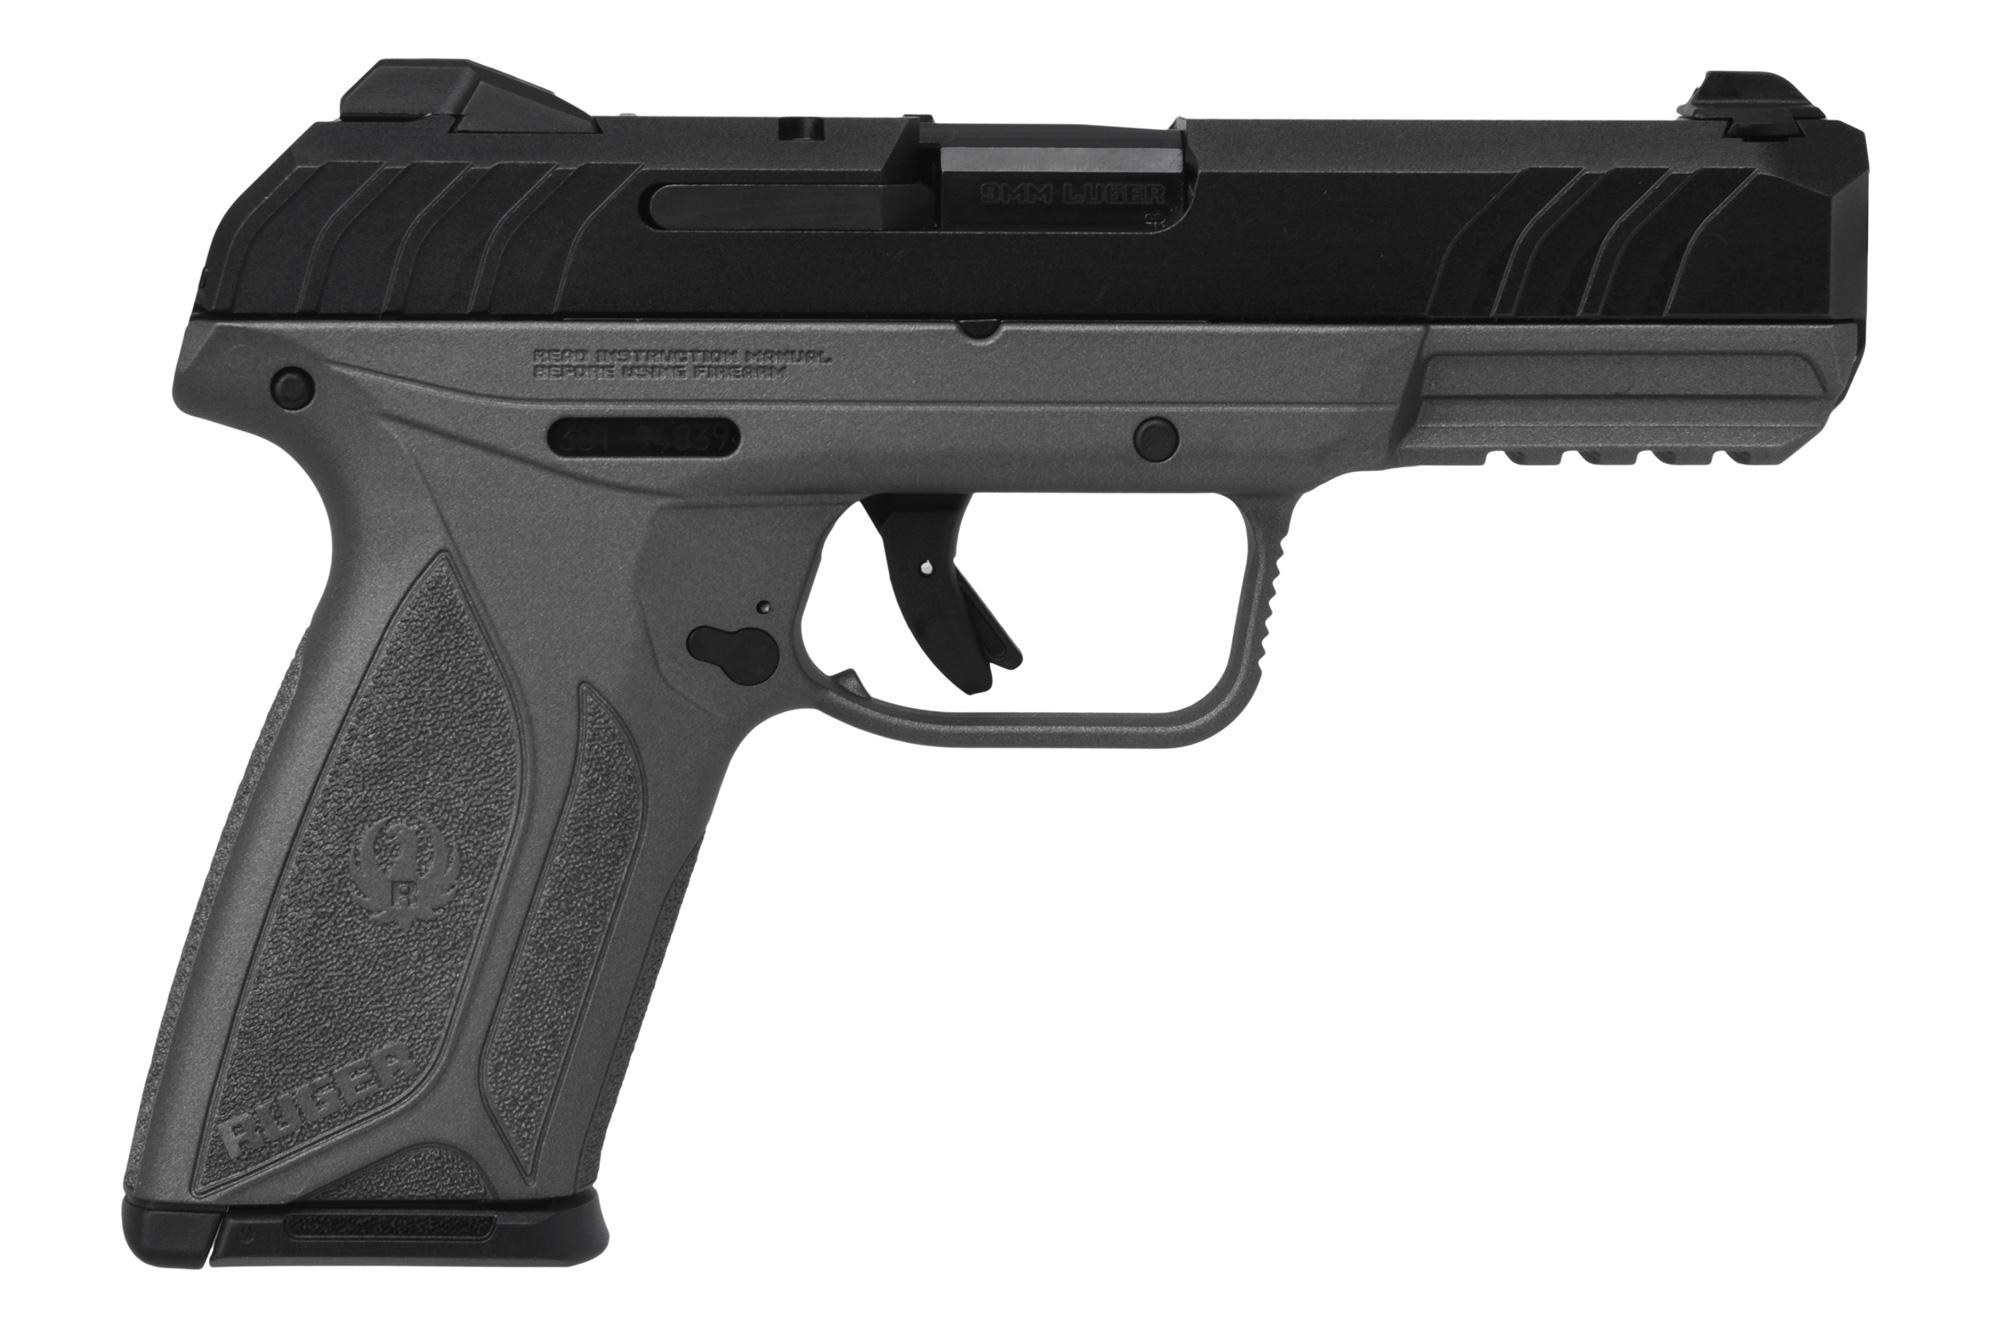 SECURITY-9 9MM BK/TUNG 4 15+1 - 3823 | INCLUDES 2 MAGAZINES